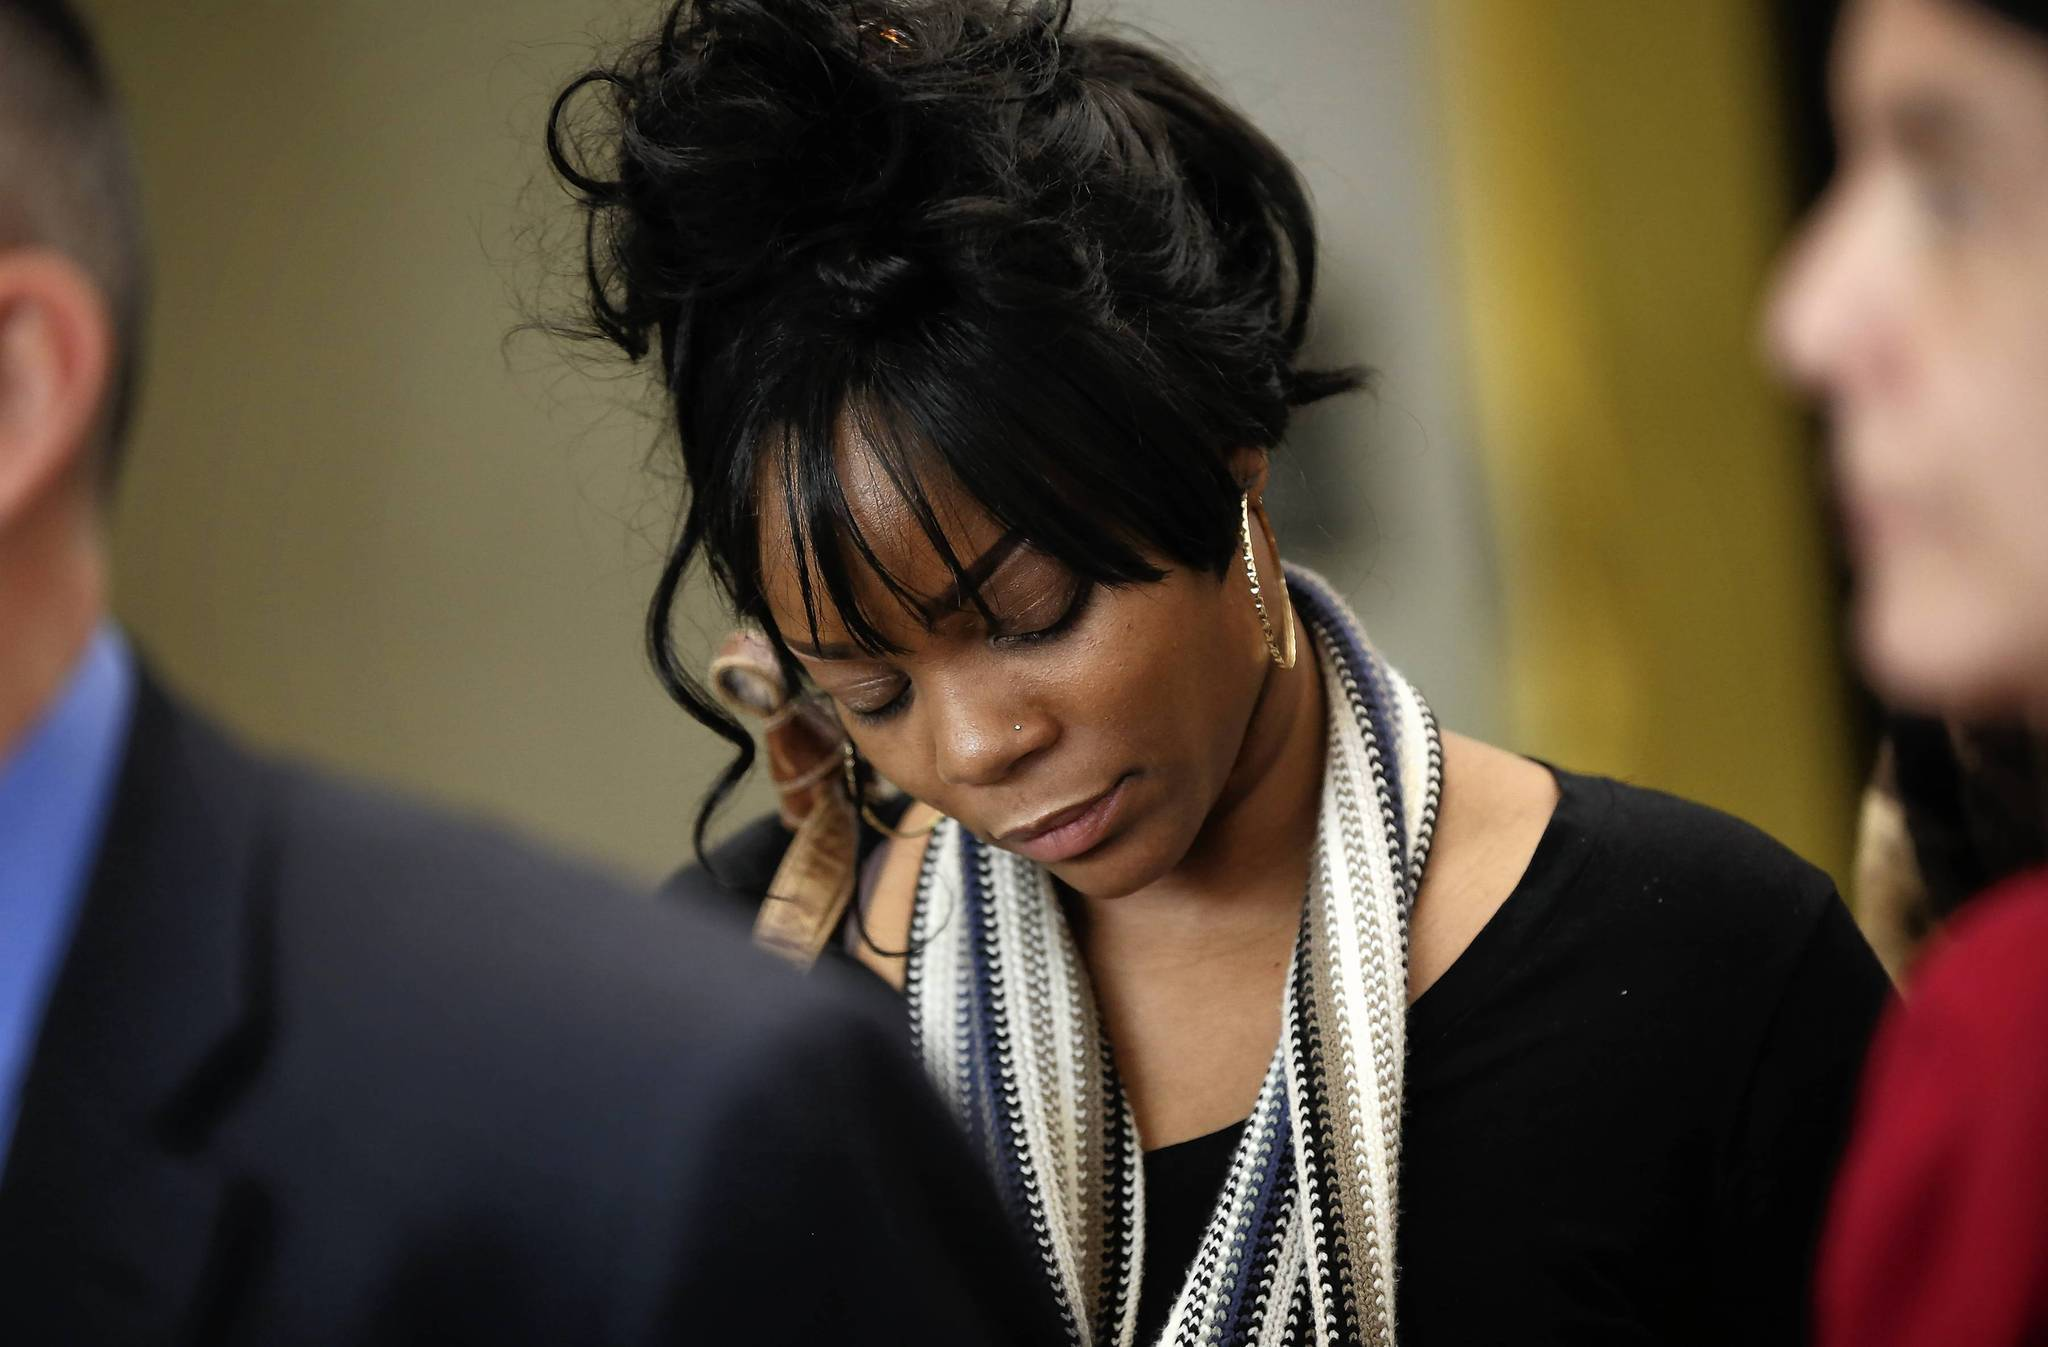 Ericka Barnes, mother of Mya Lyons, at the George N. Leighton Criminal Court Building after the jury found Mya's father, Richard Lyons, guilty of murdering the 9-year-old girl.